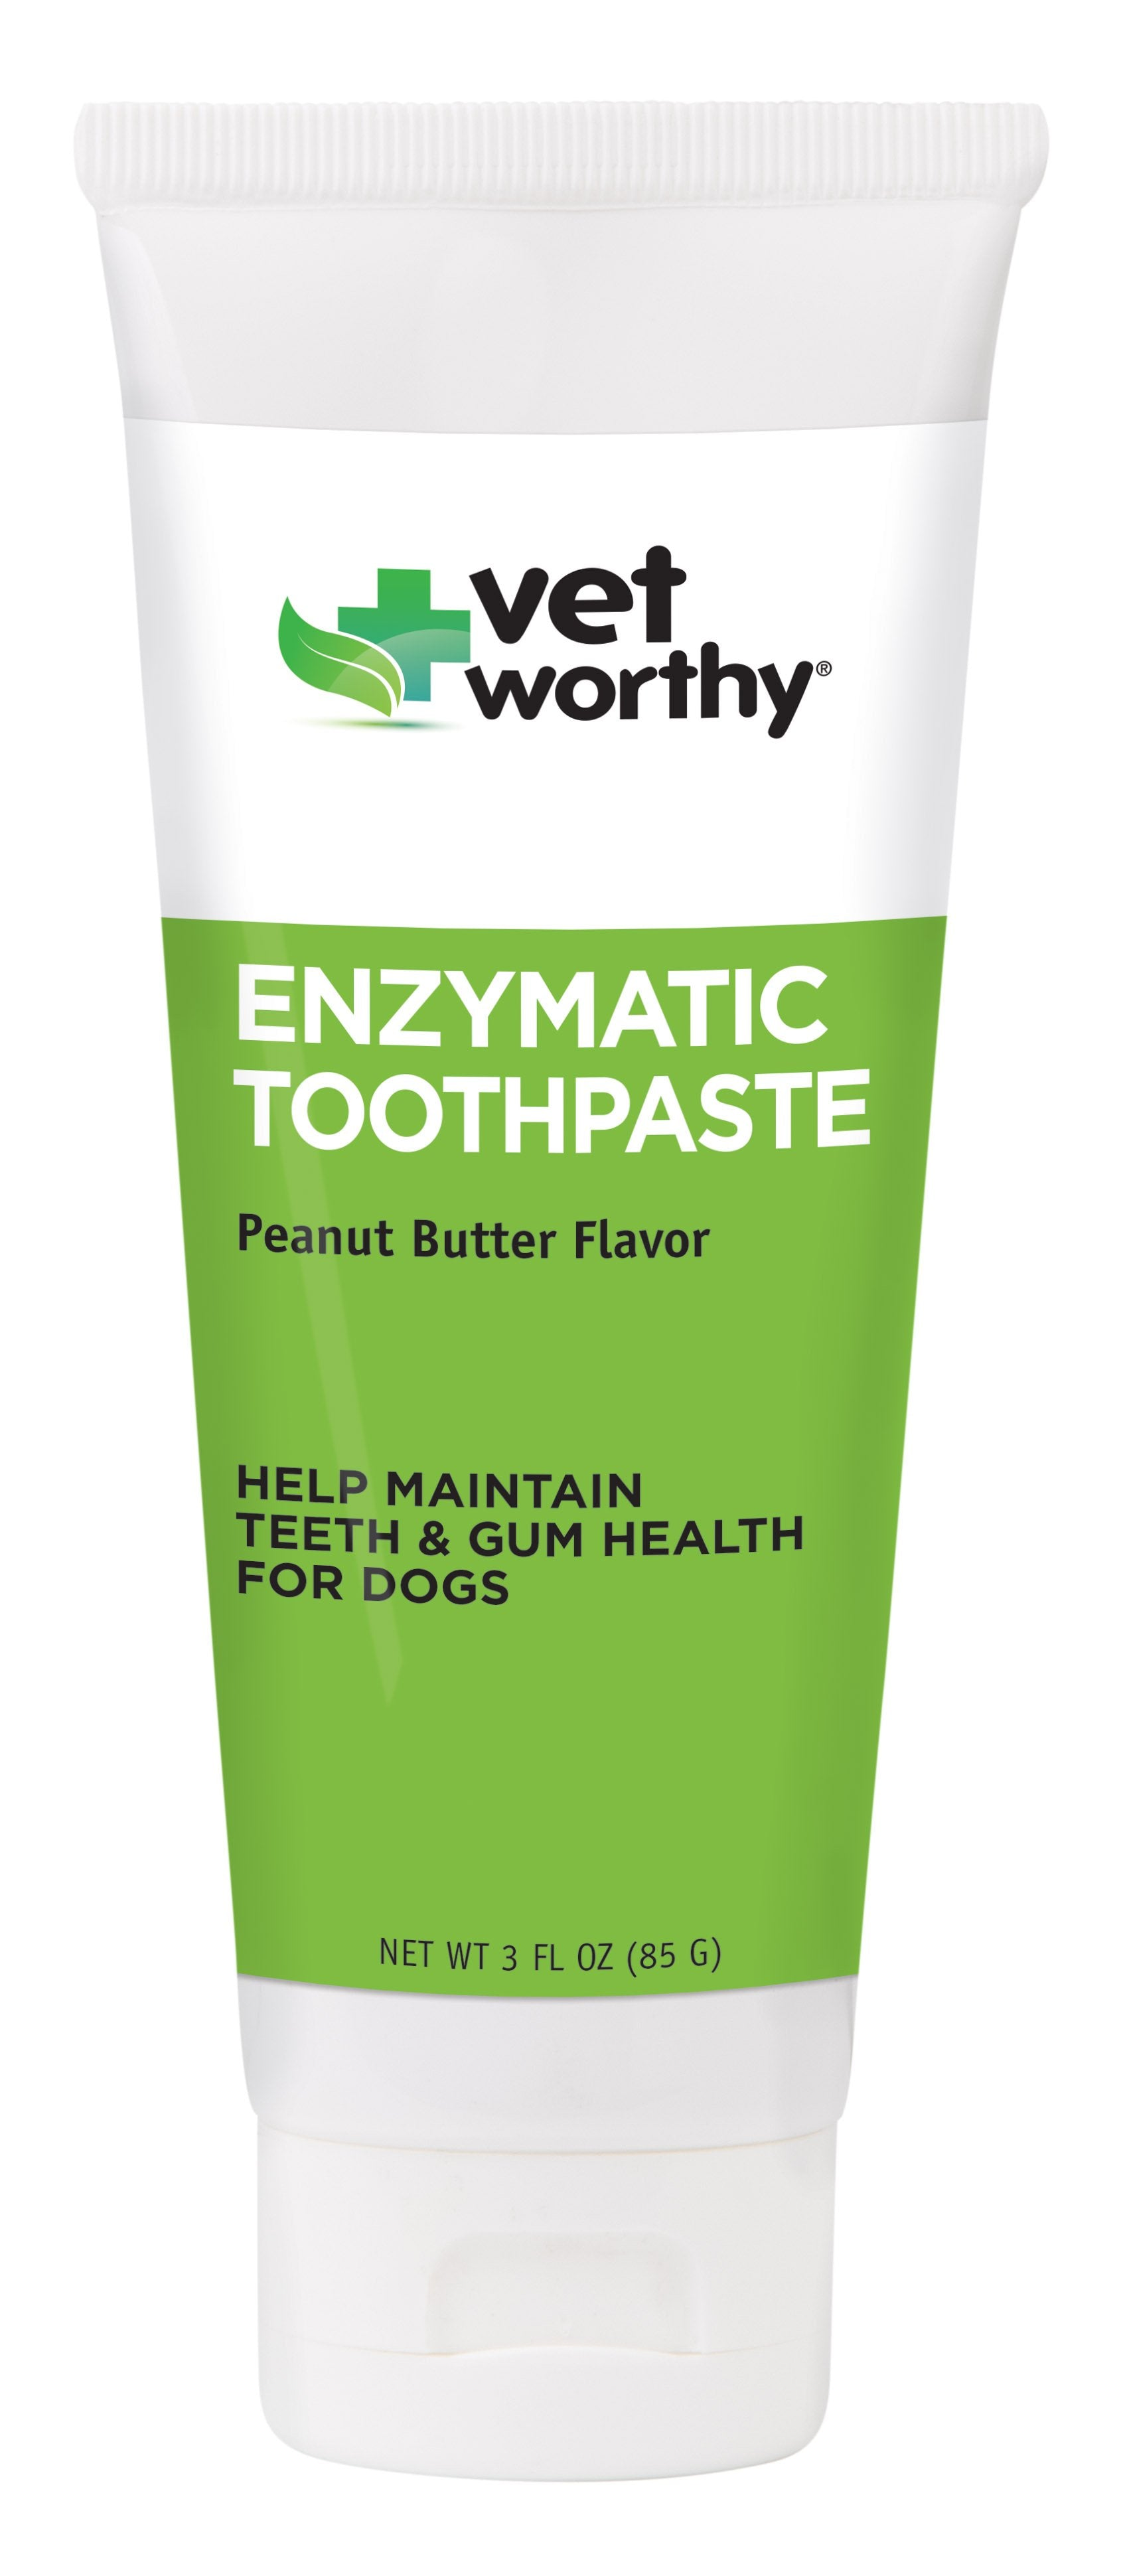 Vet Worthy Enzymatic Toothpaste (Peanut Butter Flavor) 3oz - For Southeastern Guide Dogs